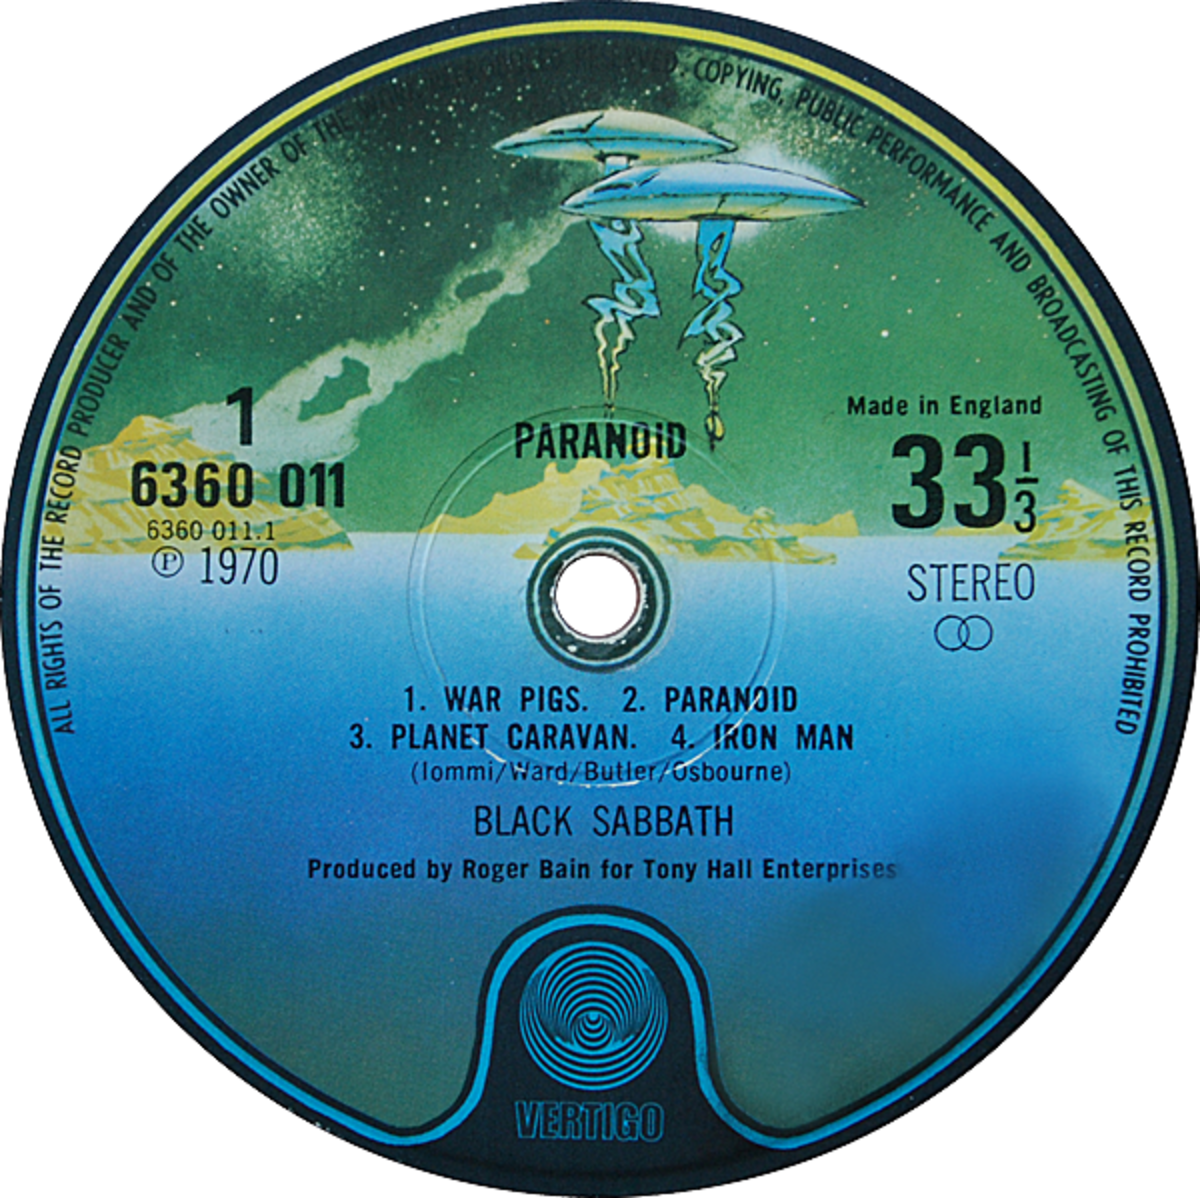 Vertigo Records Relaunch Label Art Created in 1973 by Roger Dean